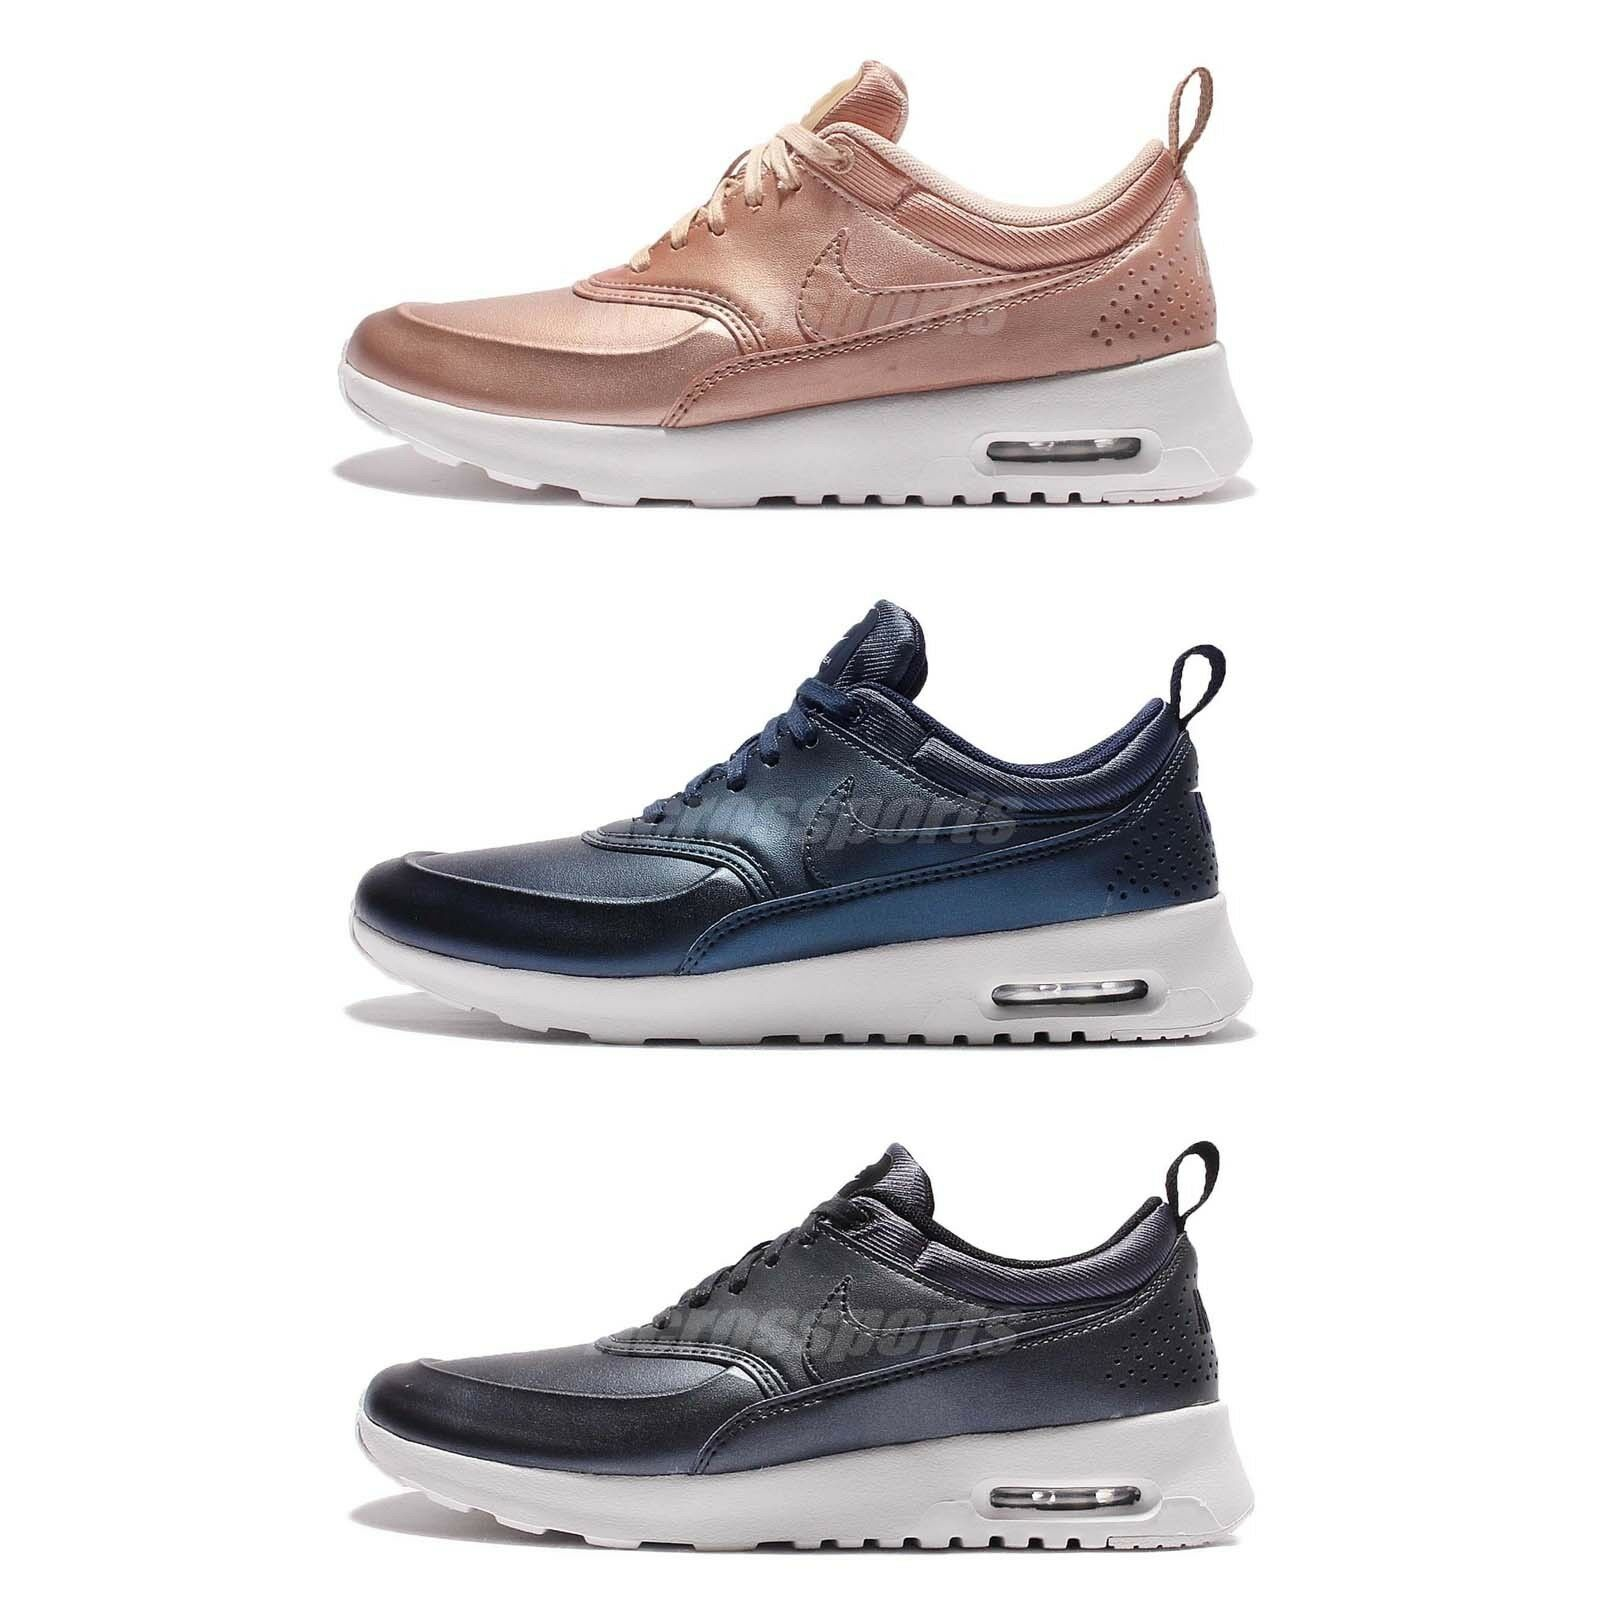 WMNS NIKE AIR Max Thea SE Womens Running Shoes Sneakers ...